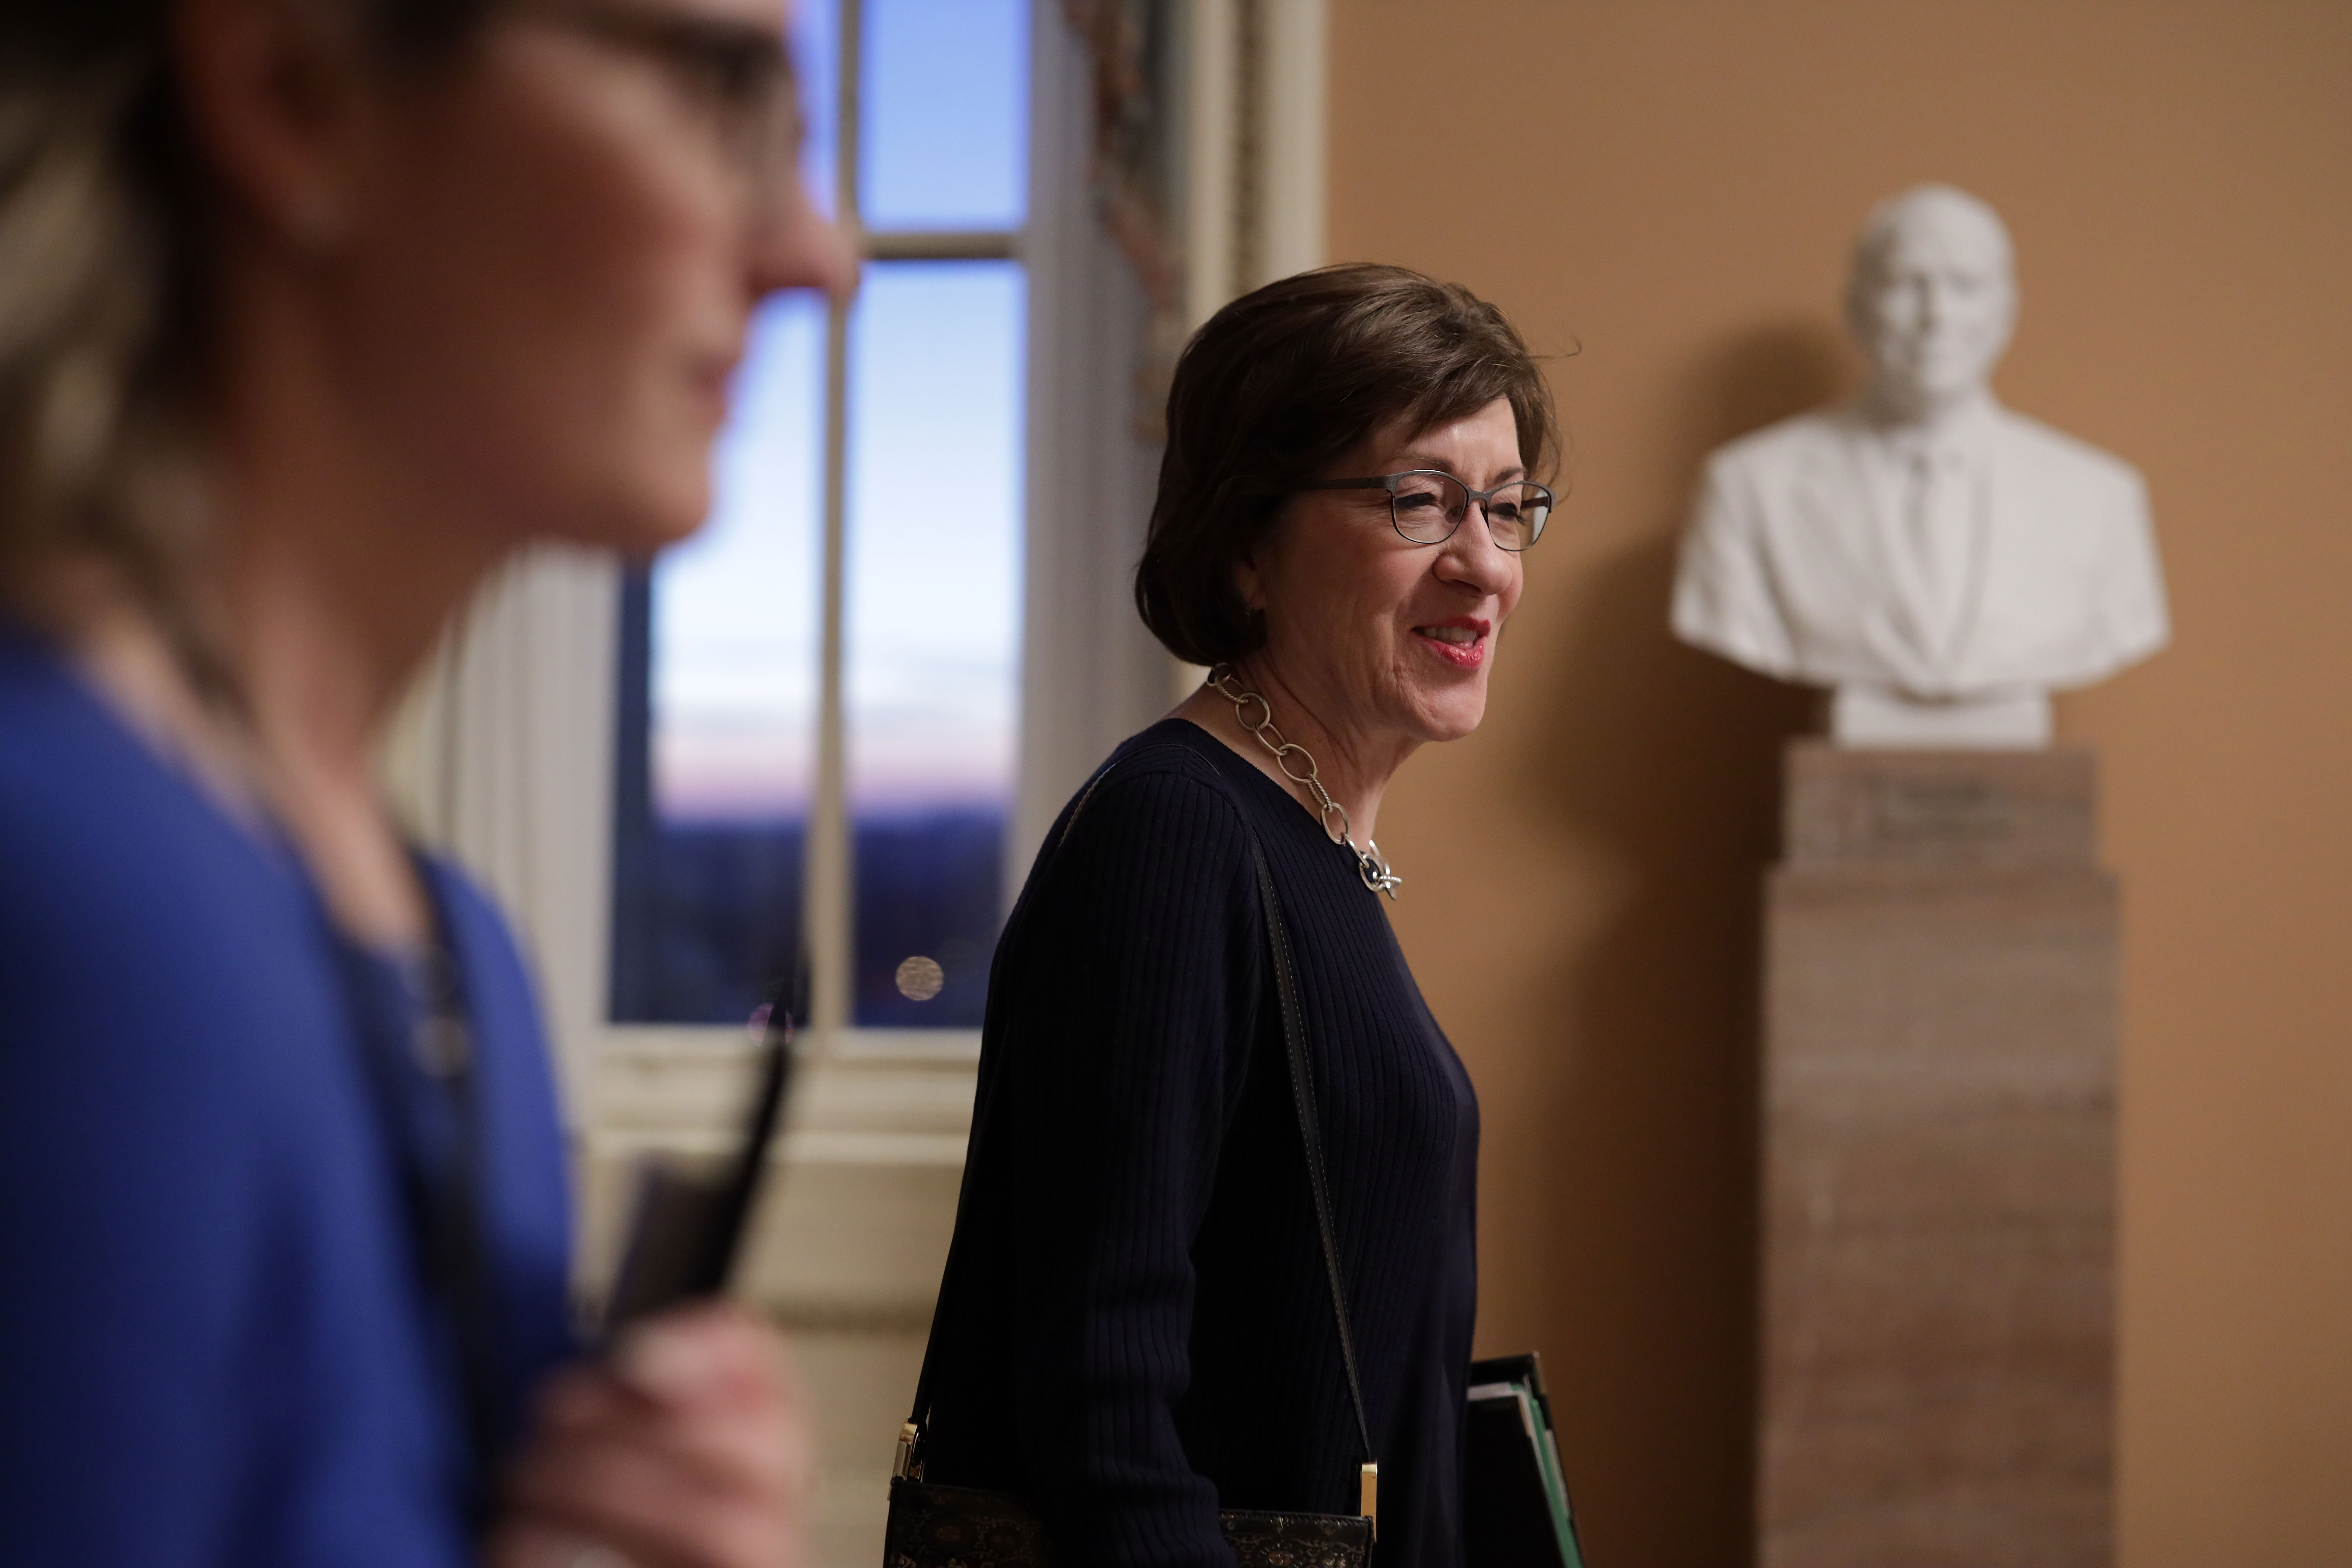 U.S. Sen. Susan Collins (R-ME) (R) walks in a hallway with aides at the U.S. Capitol January 28, 2019 in Washington, DC. (Alex Wong/Getty Images)